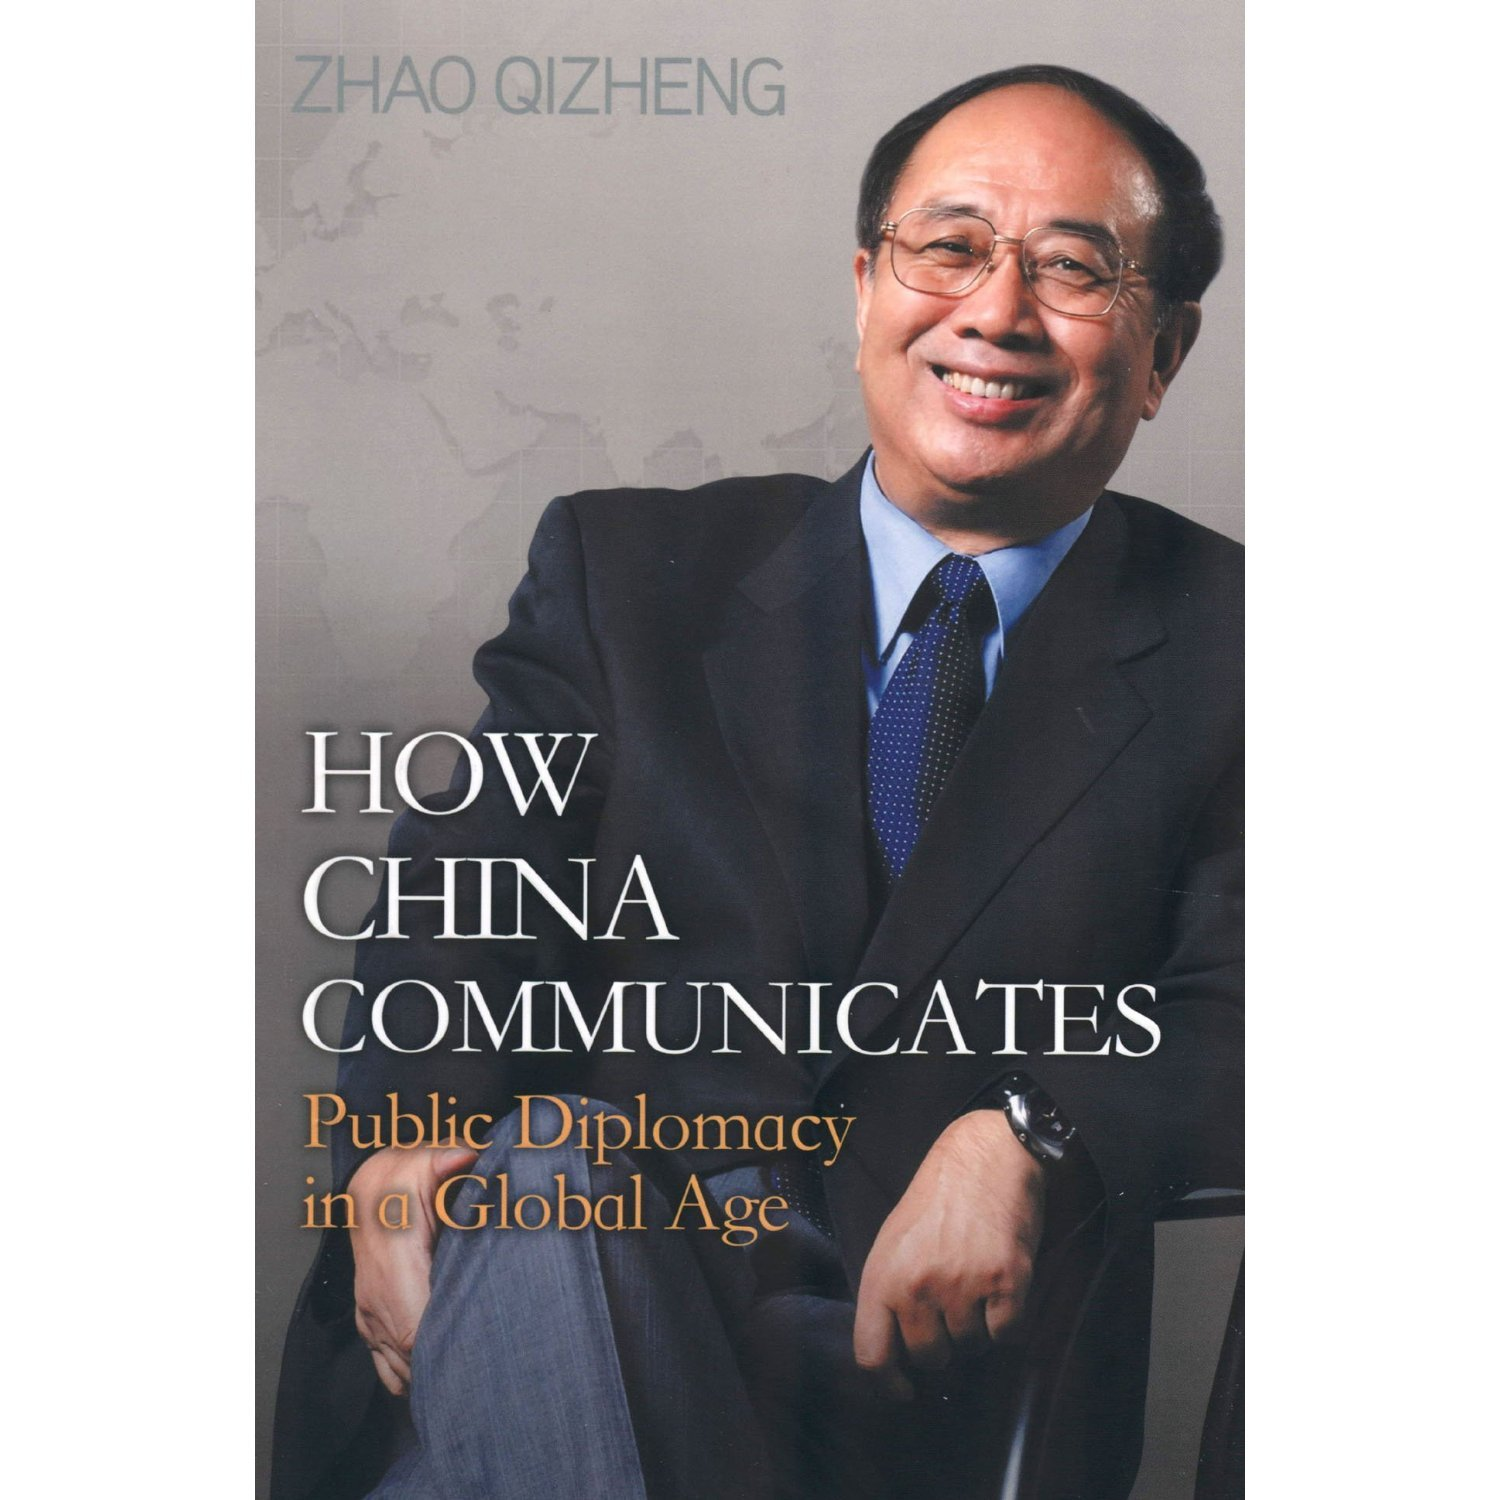 How China Communicates Public Diplomacy in a Golbal Age (Chinese Edition) PDF